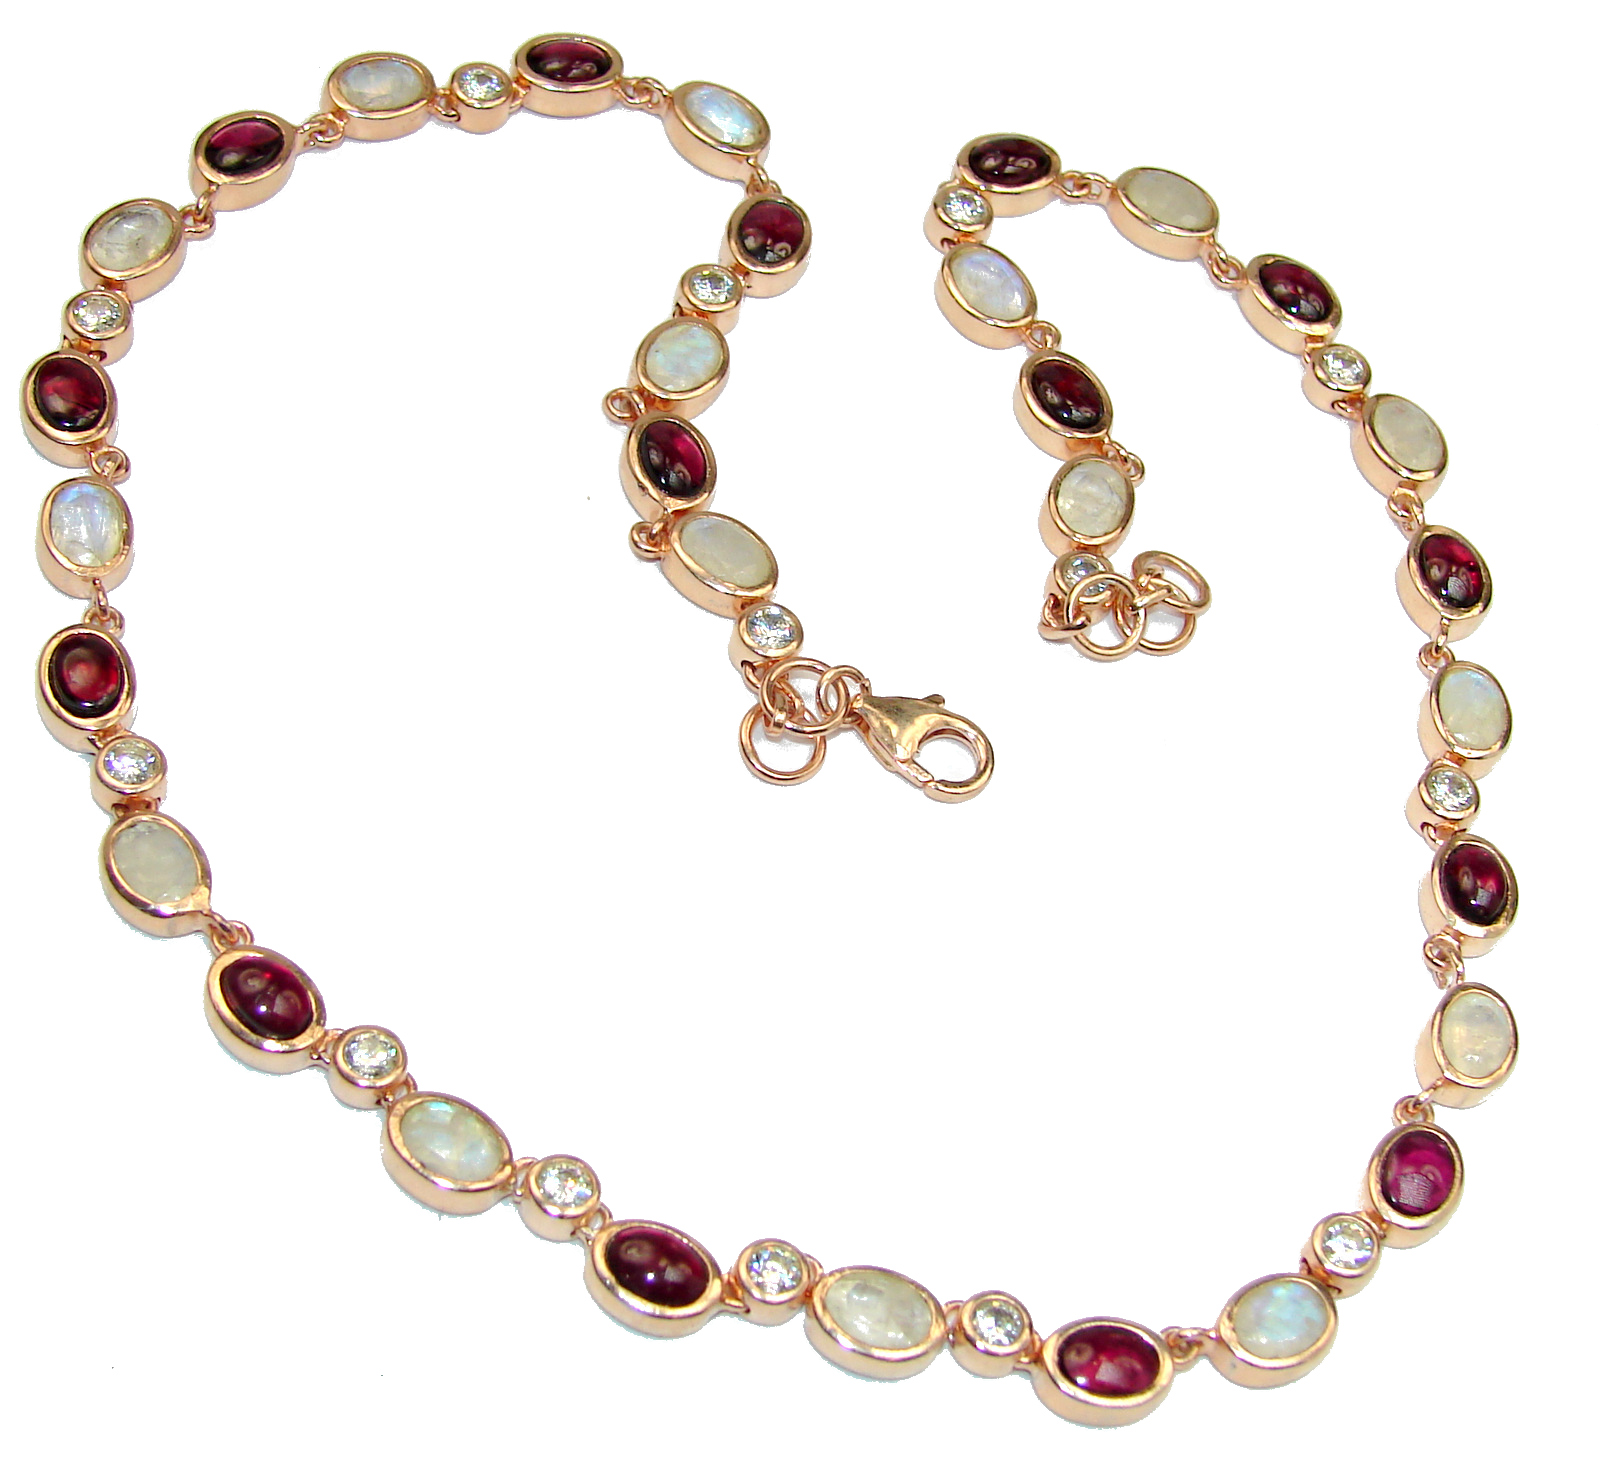 Great Masterpiece genuine Moonstone 14K Gold over .925 Sterling Silver handmade necklace